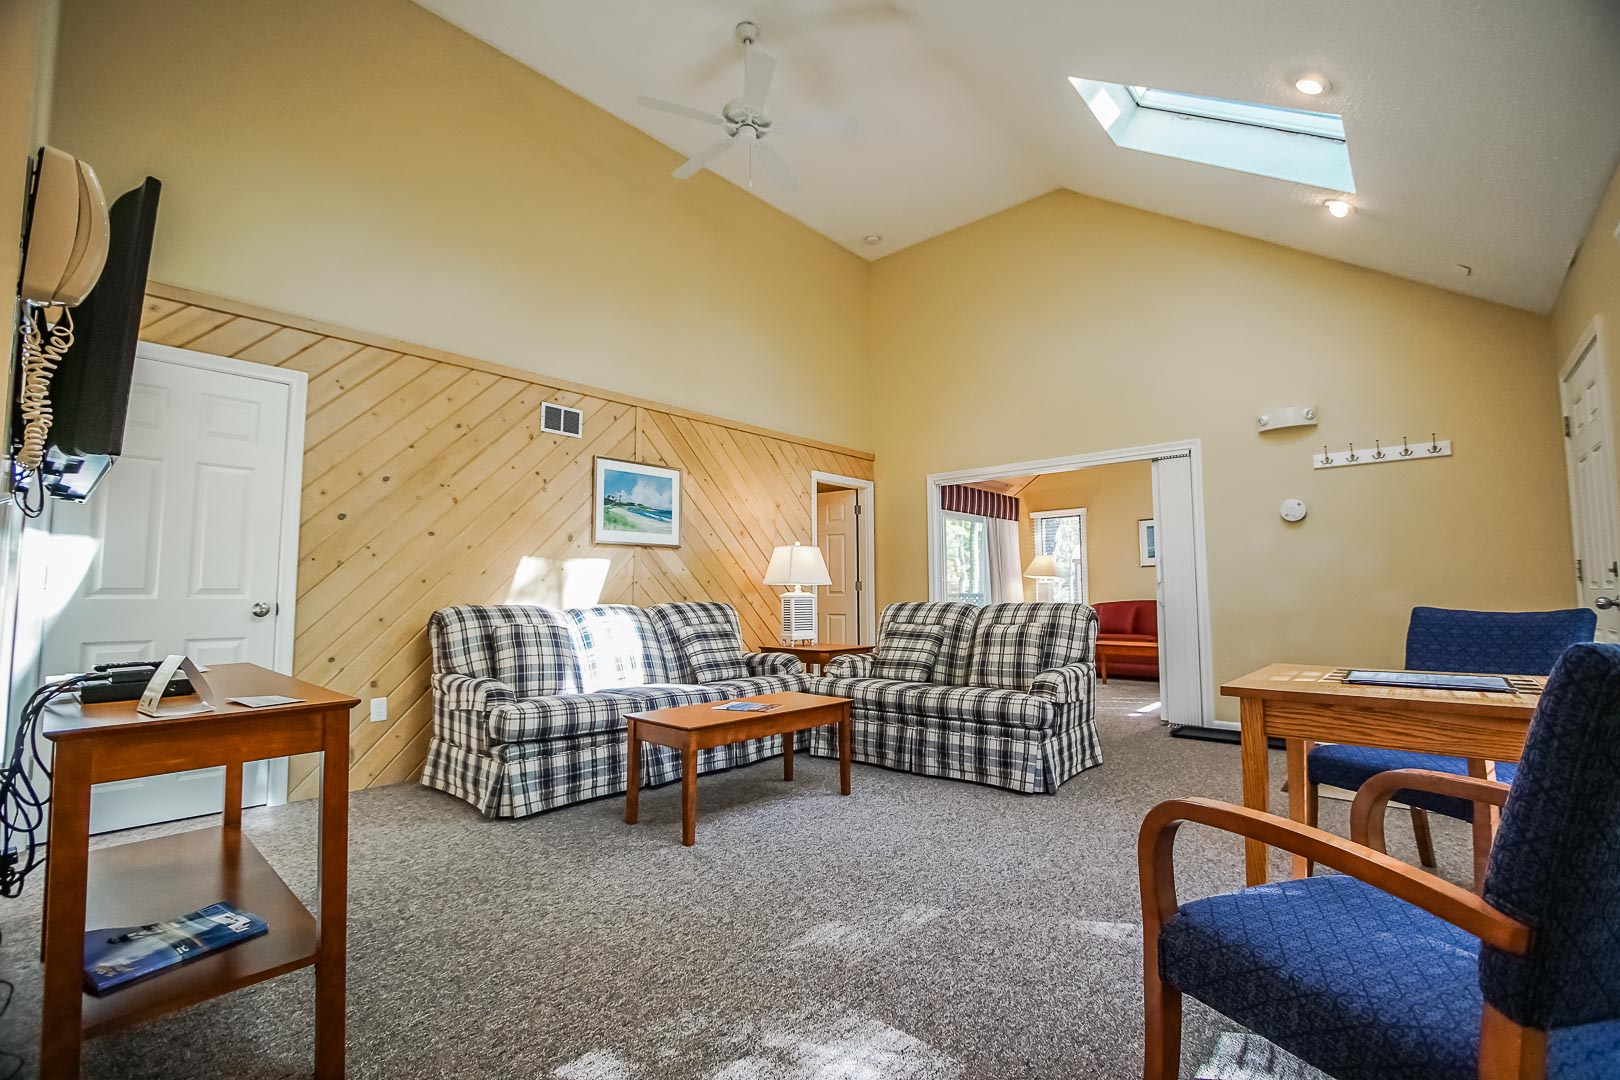 An expansive living room area at VRI's Cape Cod Holiday Estates in Massachusetts.